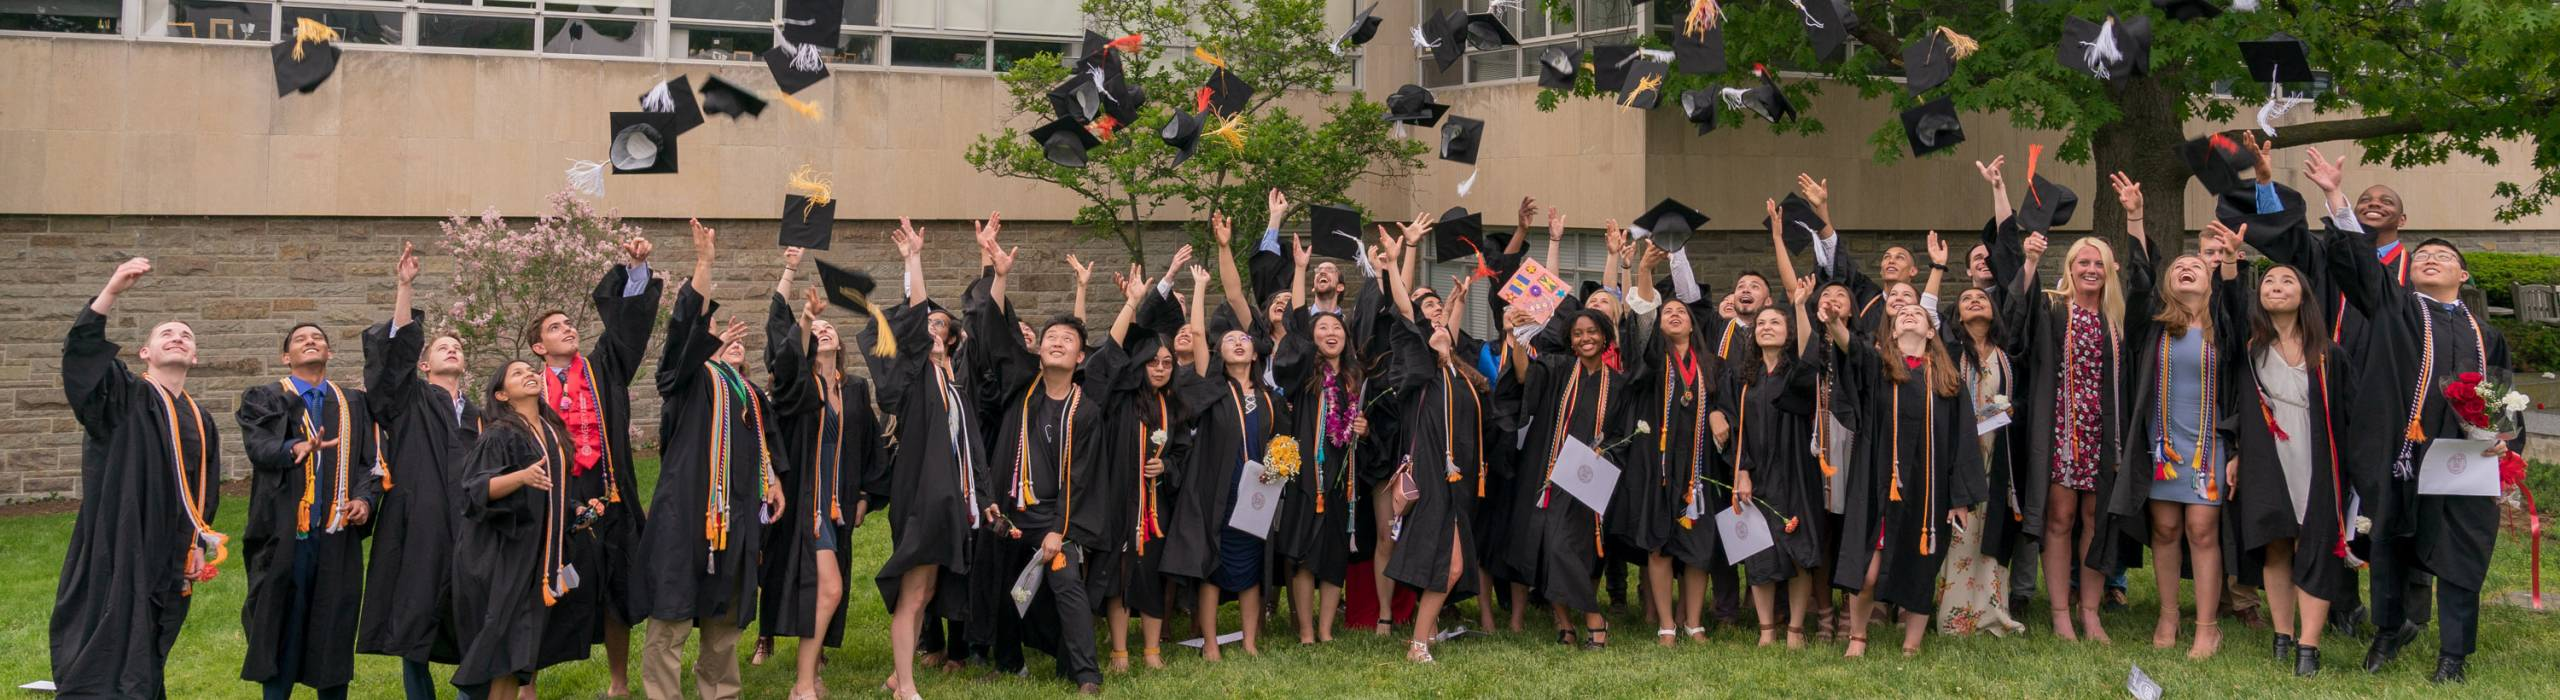 Info Sci's graduating class of 2018 during commencement ceremonies on May 26, 2018.